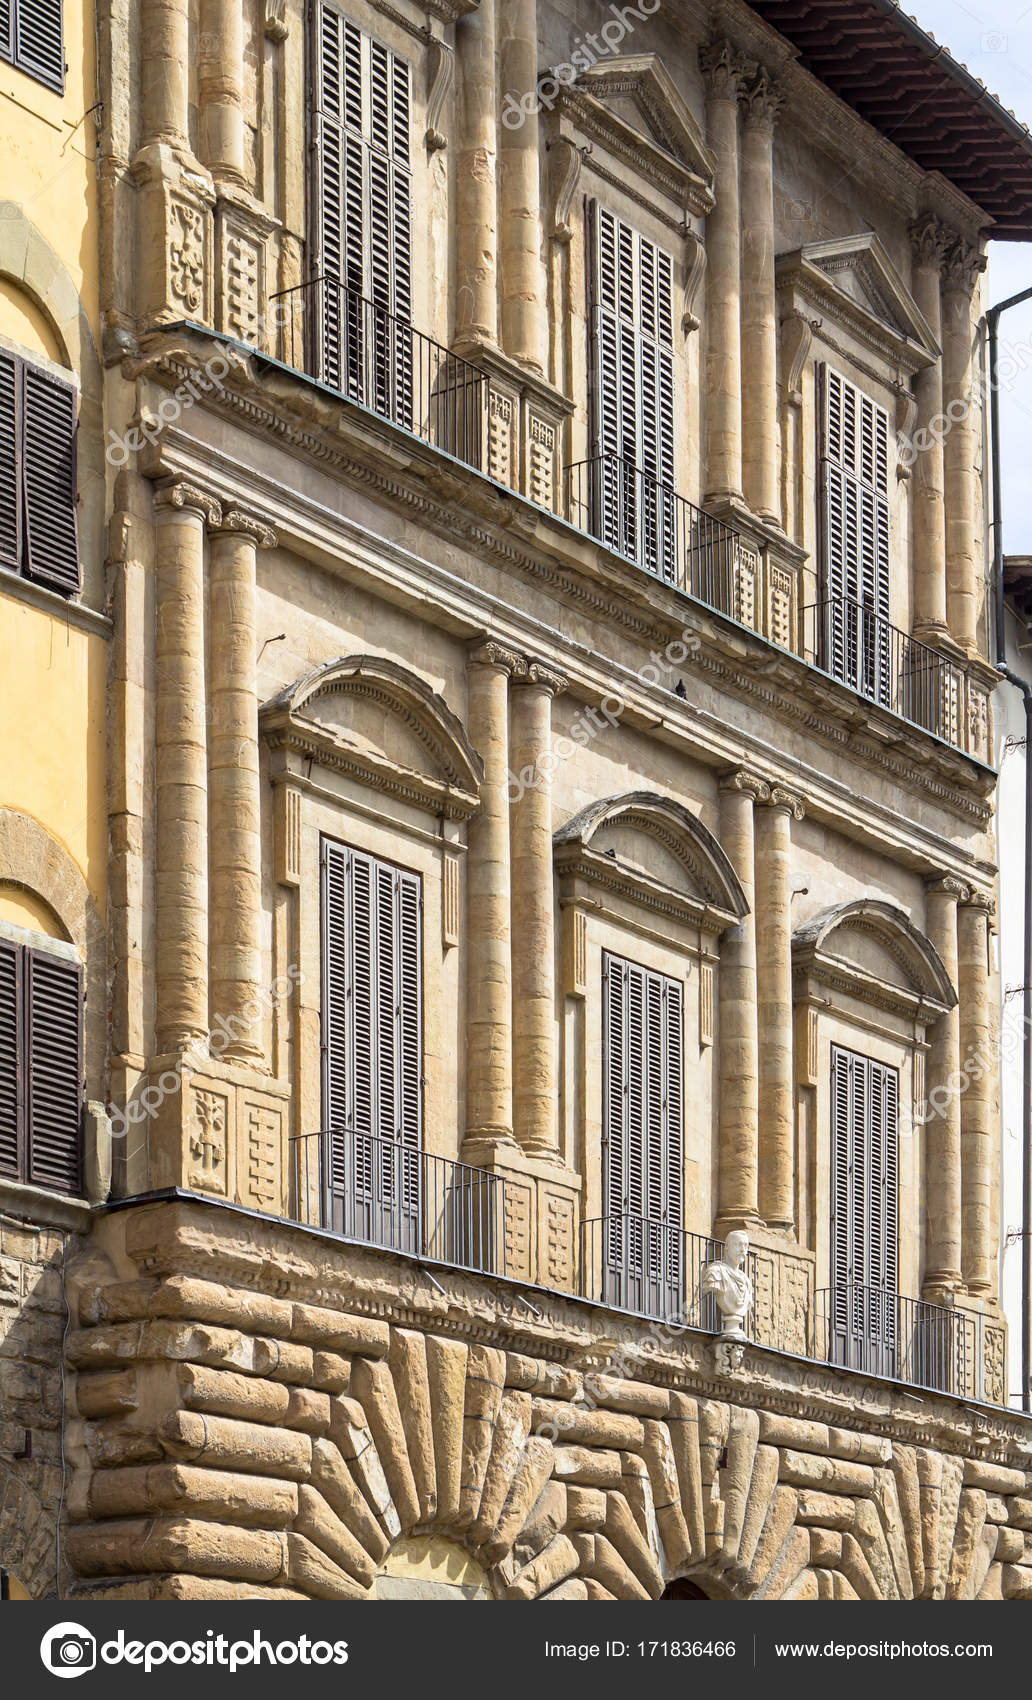 Altes Haus Mit Fensterladen In Florenz Italien Stockfoto C Cahkt